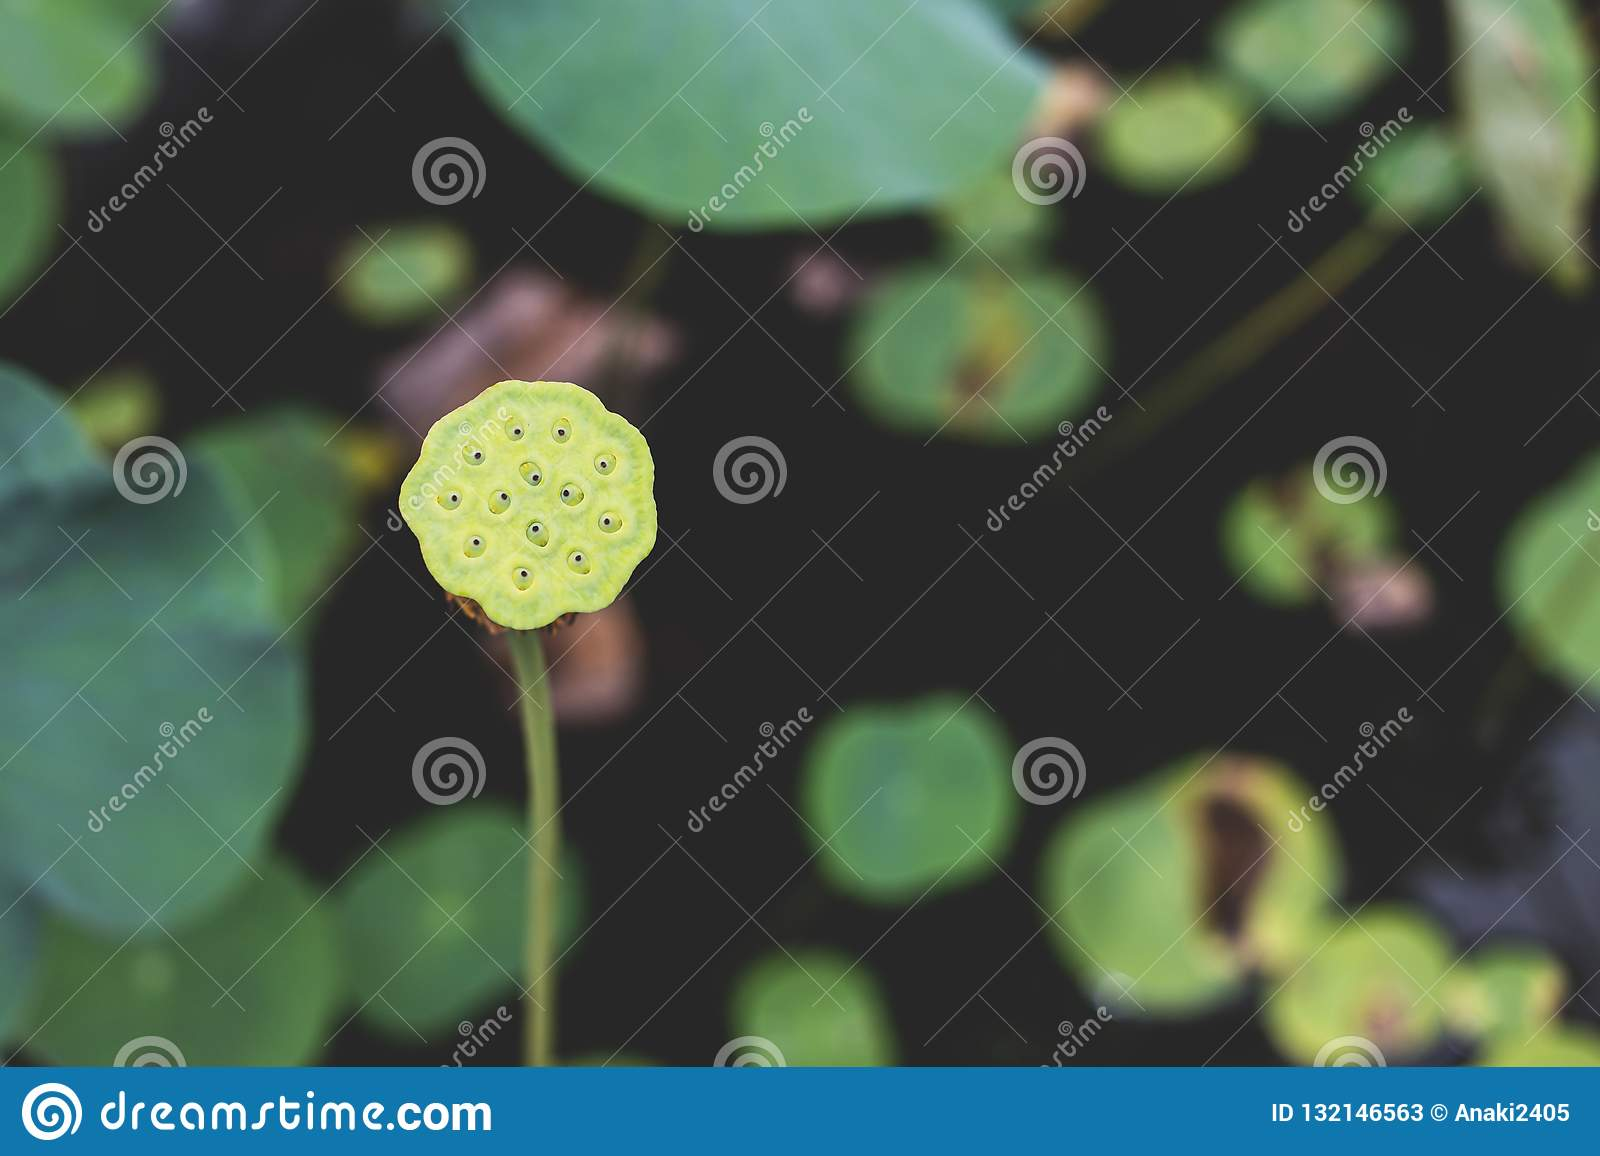 Image Of A Single Tall Green Lotus Stem Seeds And Pod